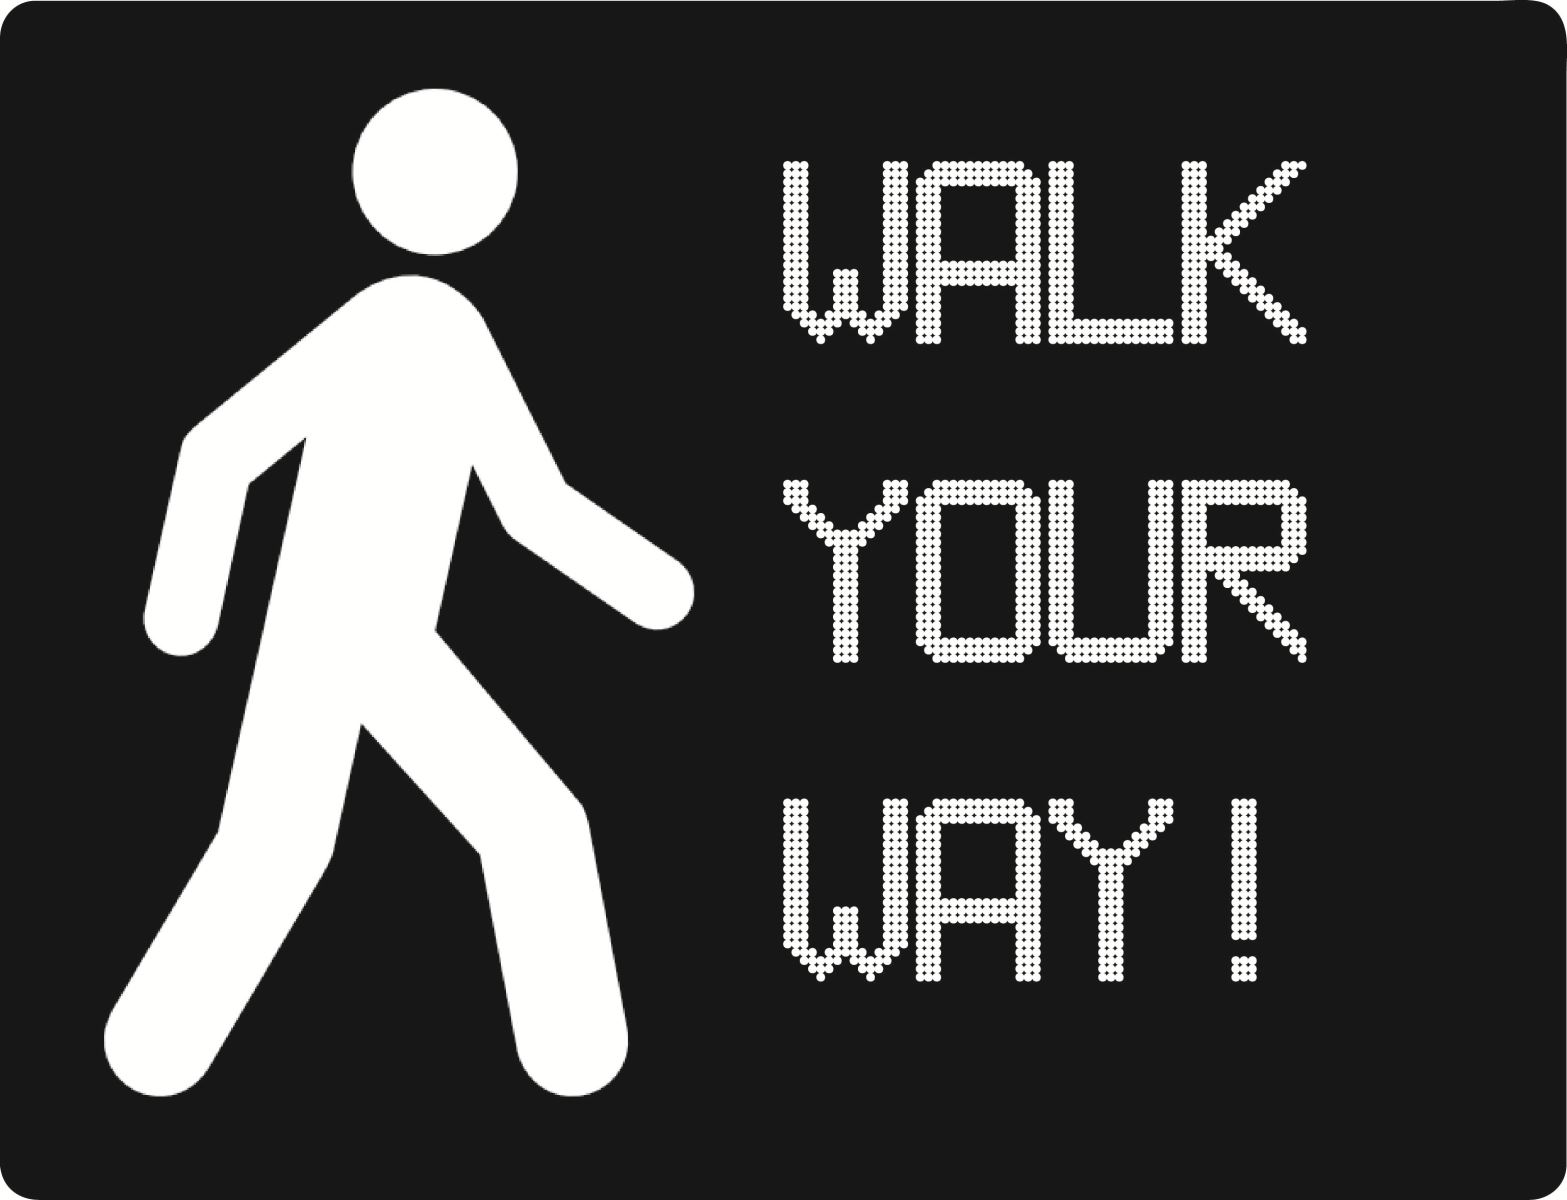 http://www.montgomerycountymd.gov/DOT-PedSafety/Resources/Images/Walk_Your_Way/WYWlogo.jpg